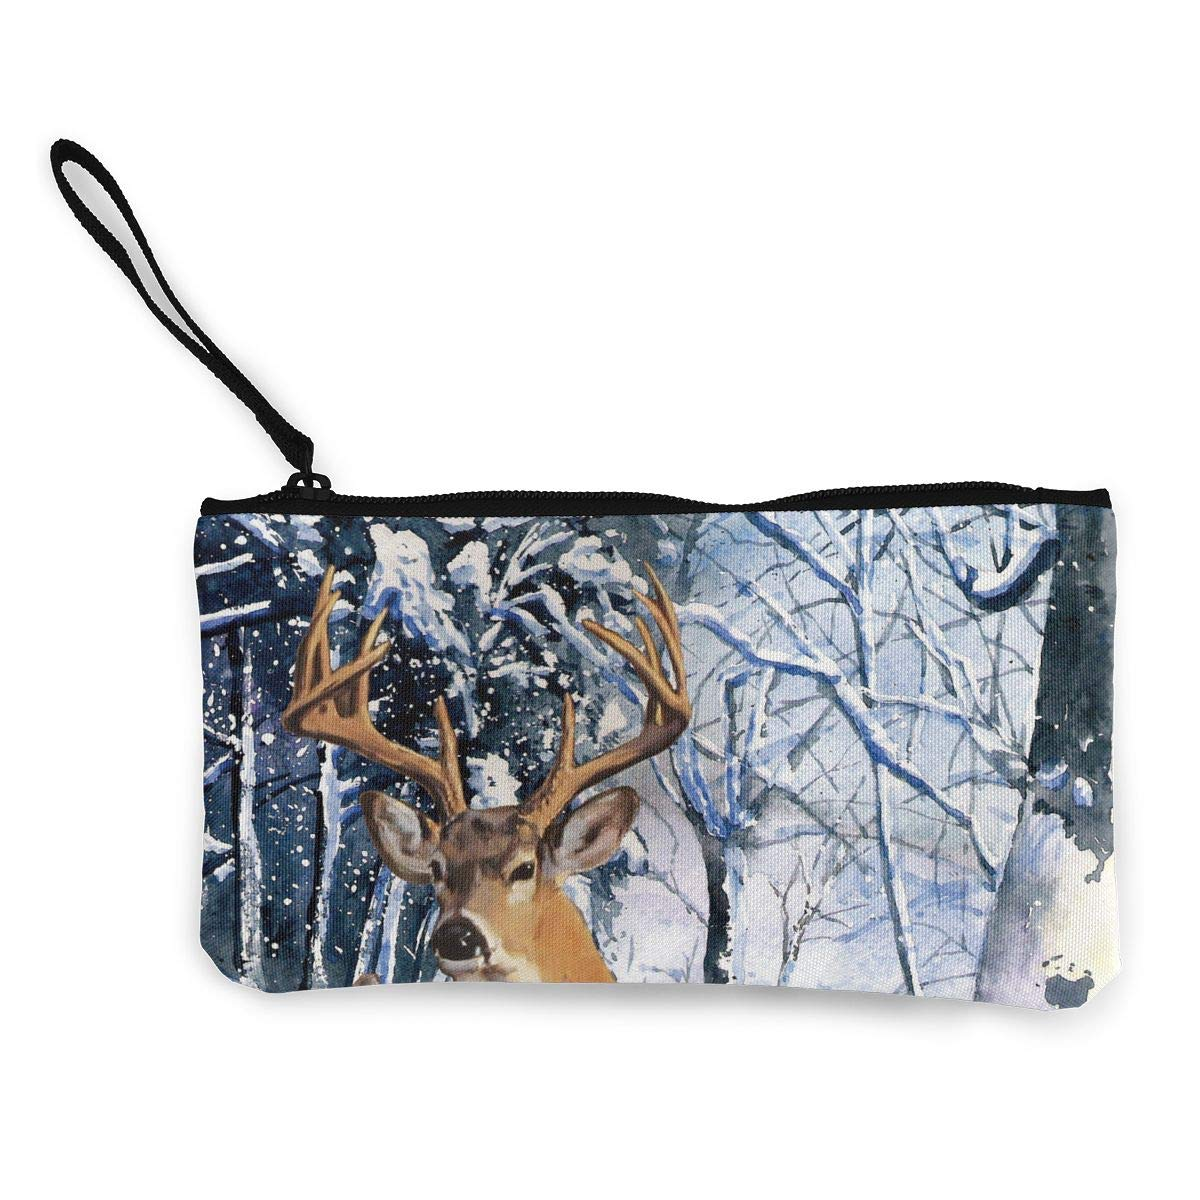 Maple Memories Deer Animal Portable Canvas Coin Purse Change Purse Pouch Mini Wallet Gifts For Women Girls